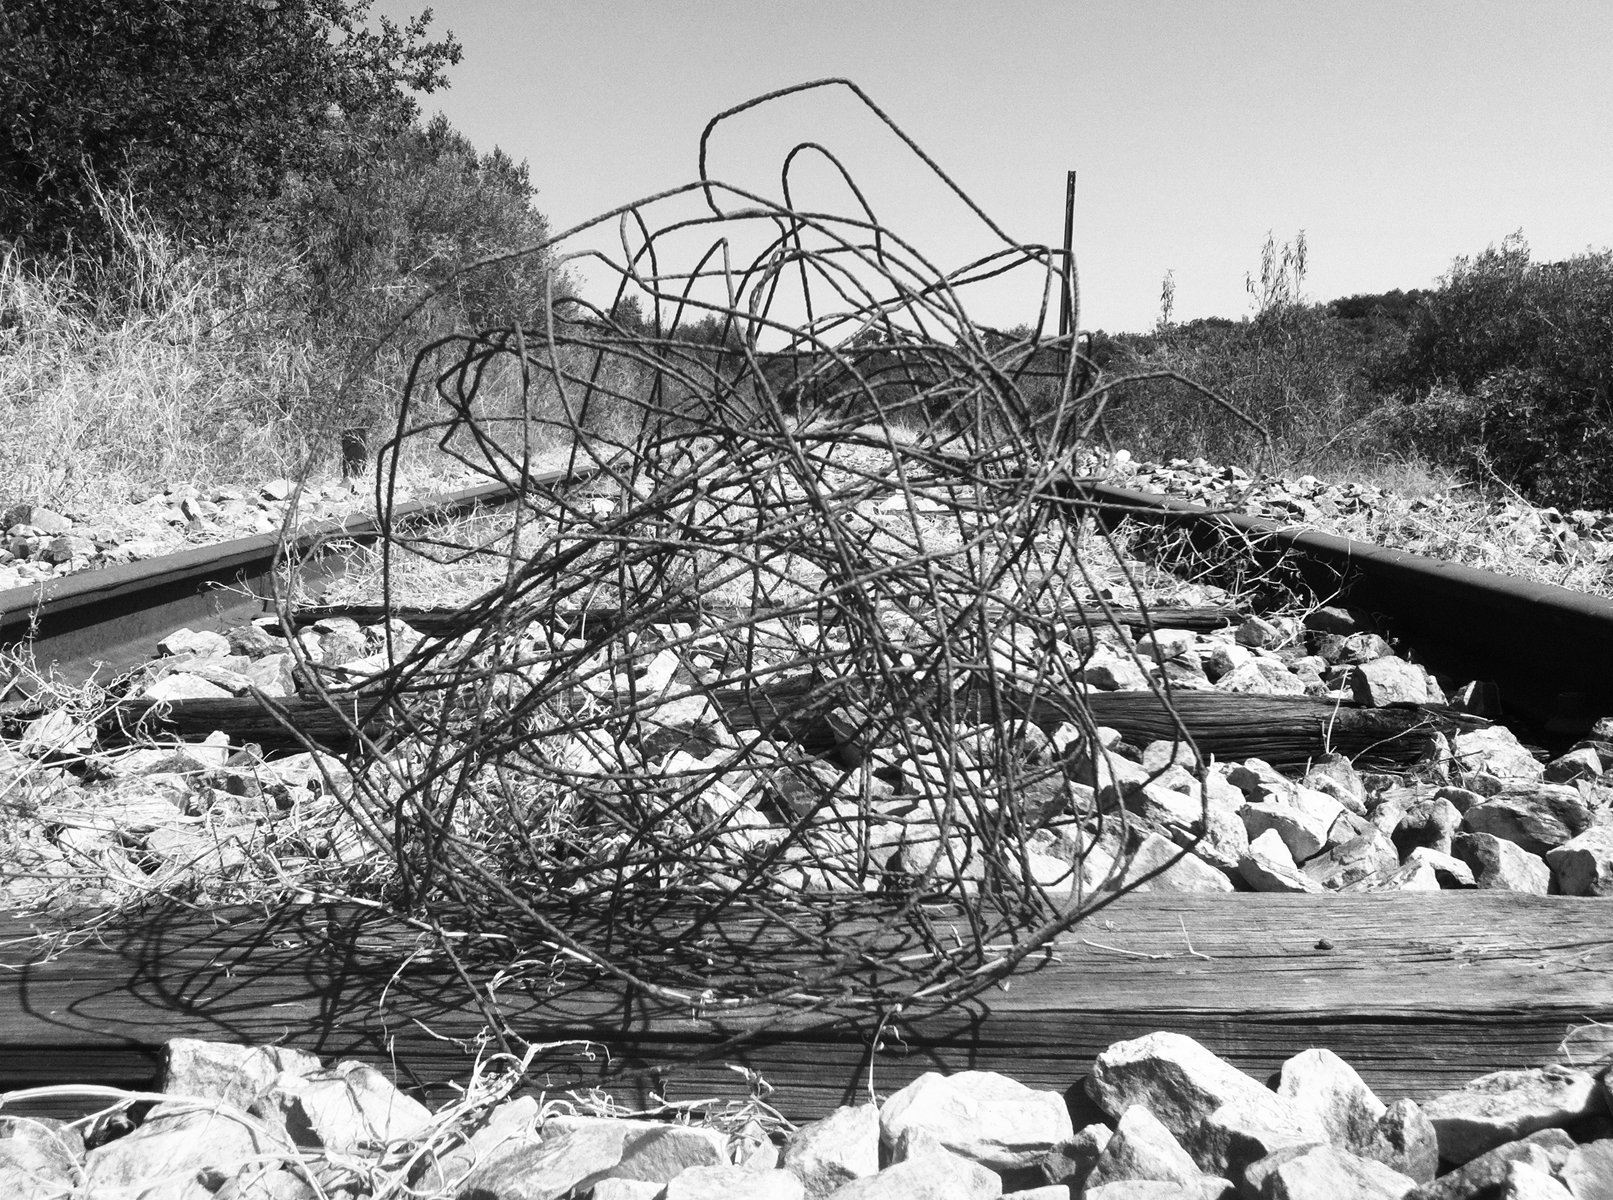 A ball of wire placed between old, receding railroad tracks in a dry rural setting.